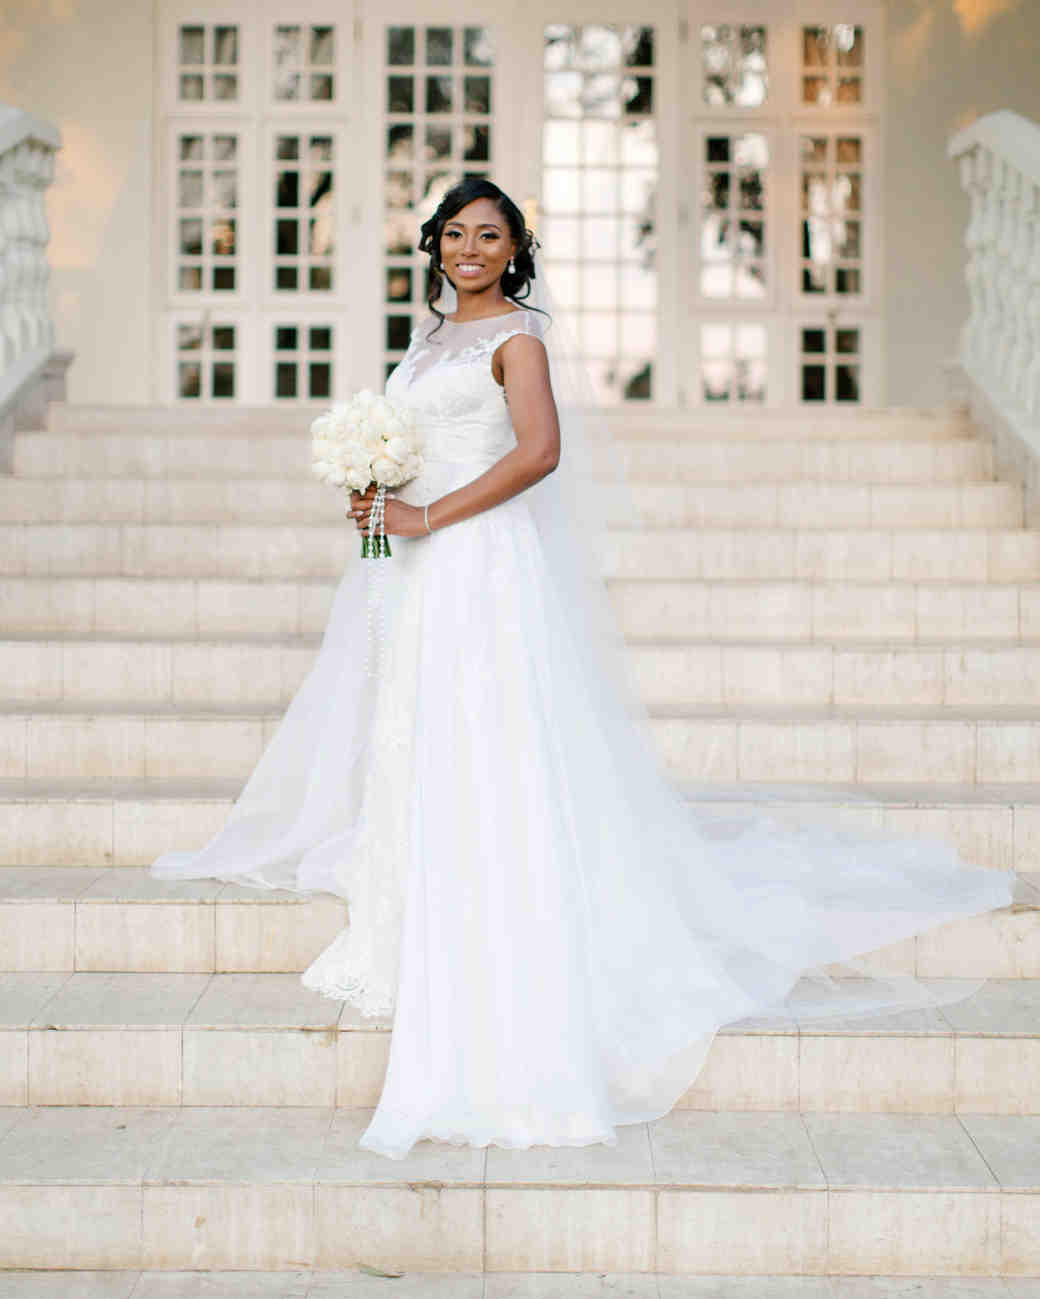 chloe shayo south africa wedding bride dress steps